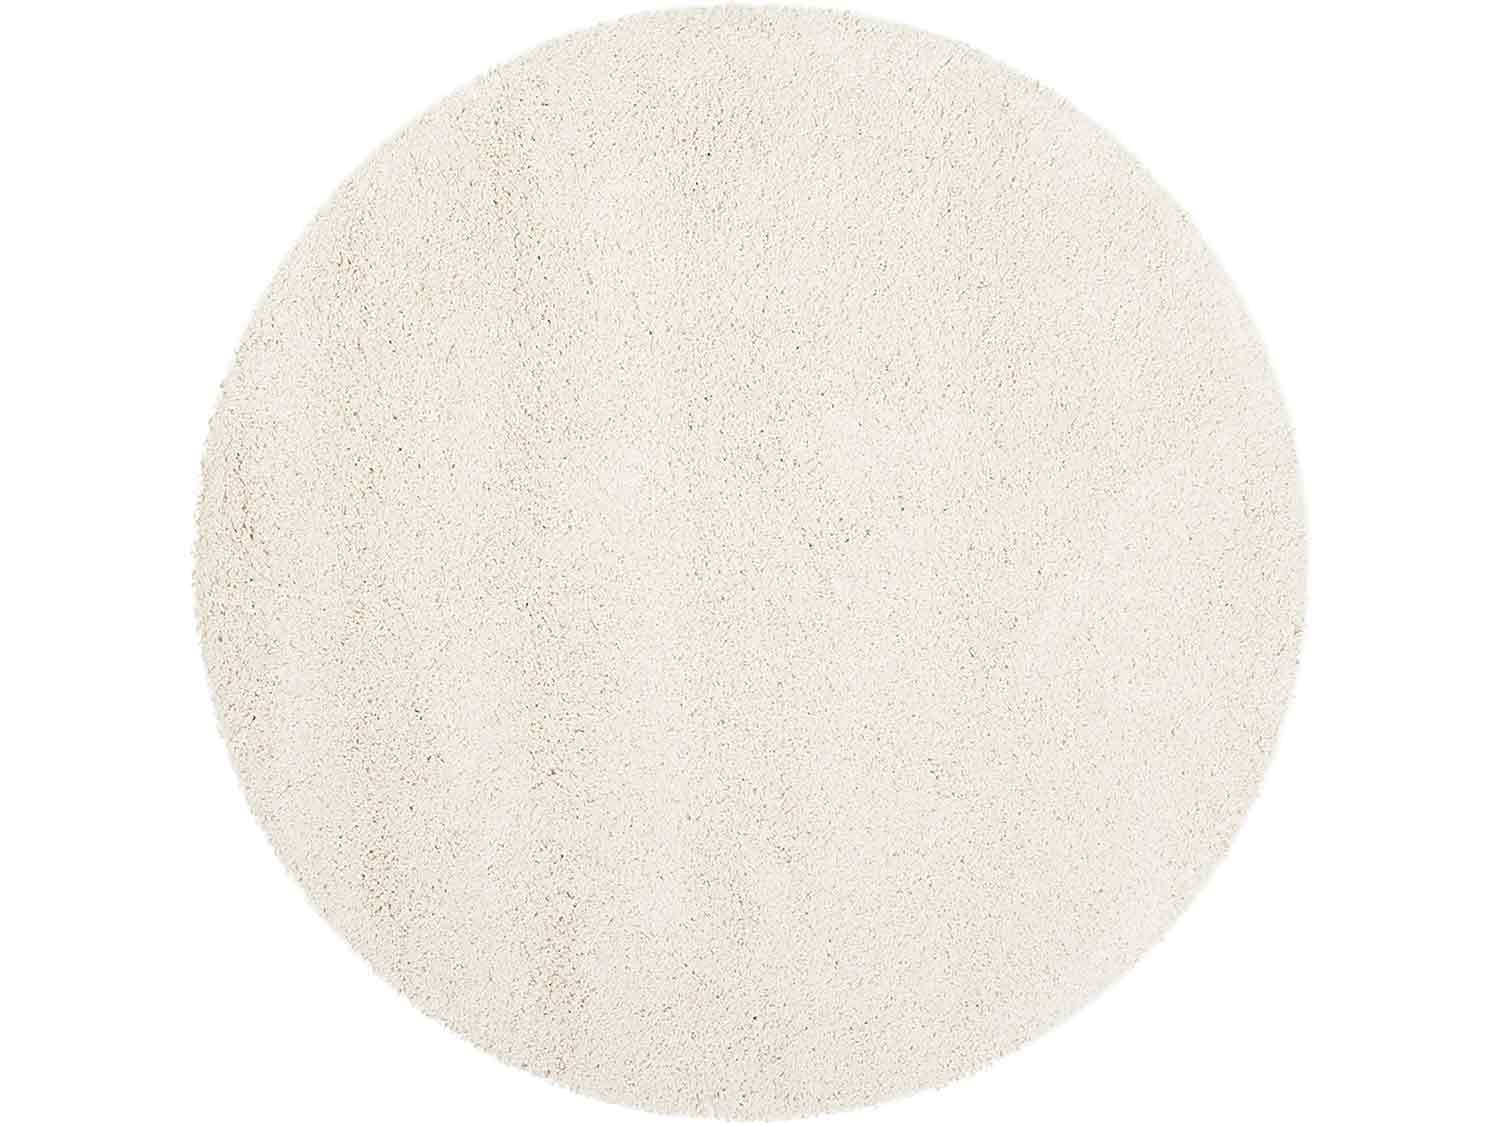 Safavieh Milan Shag Collection SG180-1212 2-inch Thick Area Rug, 7' Round, Ivory